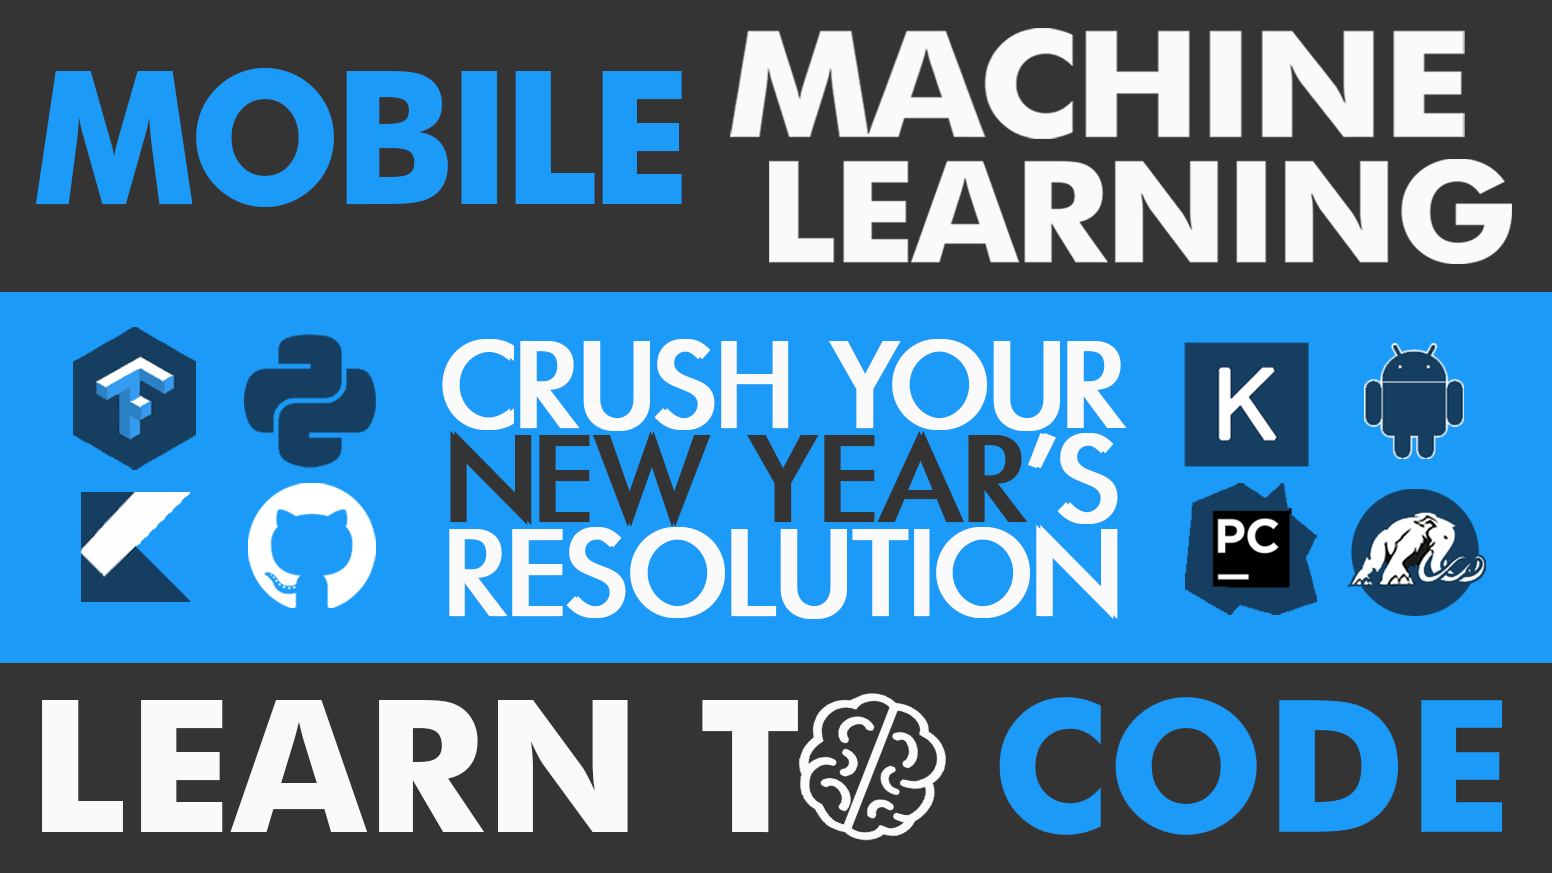 Build projects and apps driven by machine learning for Android in this massive online course.